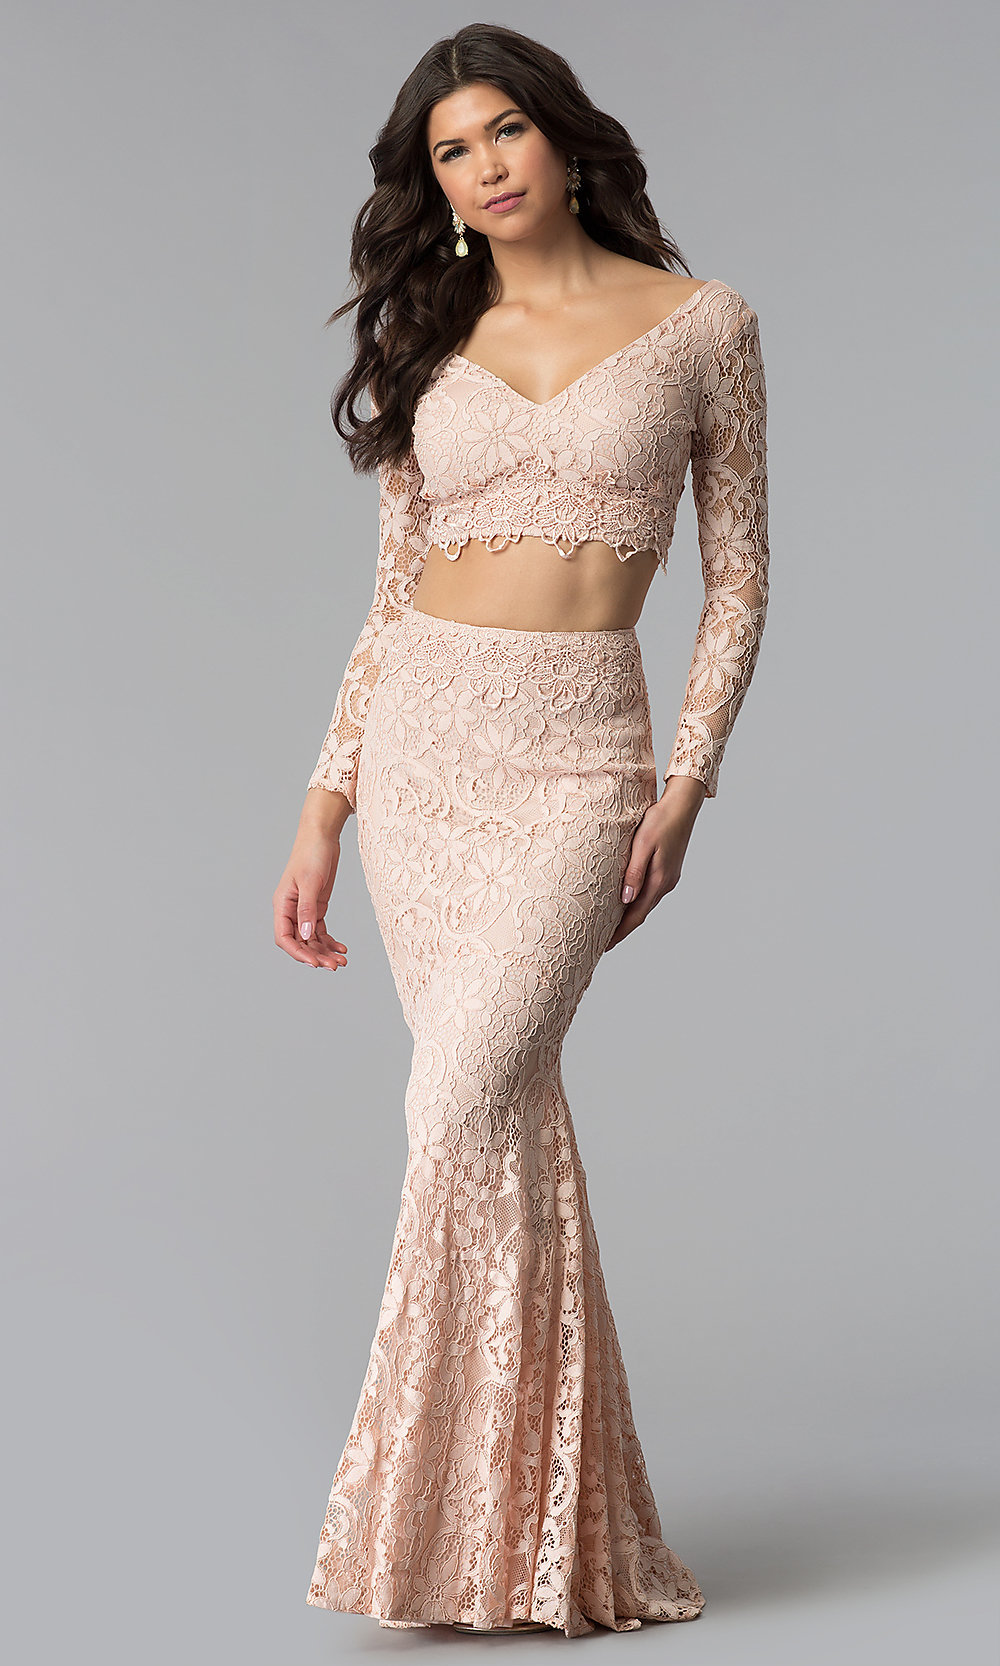 prom sleeve piece dress lace dresses sleeved mermaid neck promgirl low evening gowns front blush shipping lp easy guarantee returns